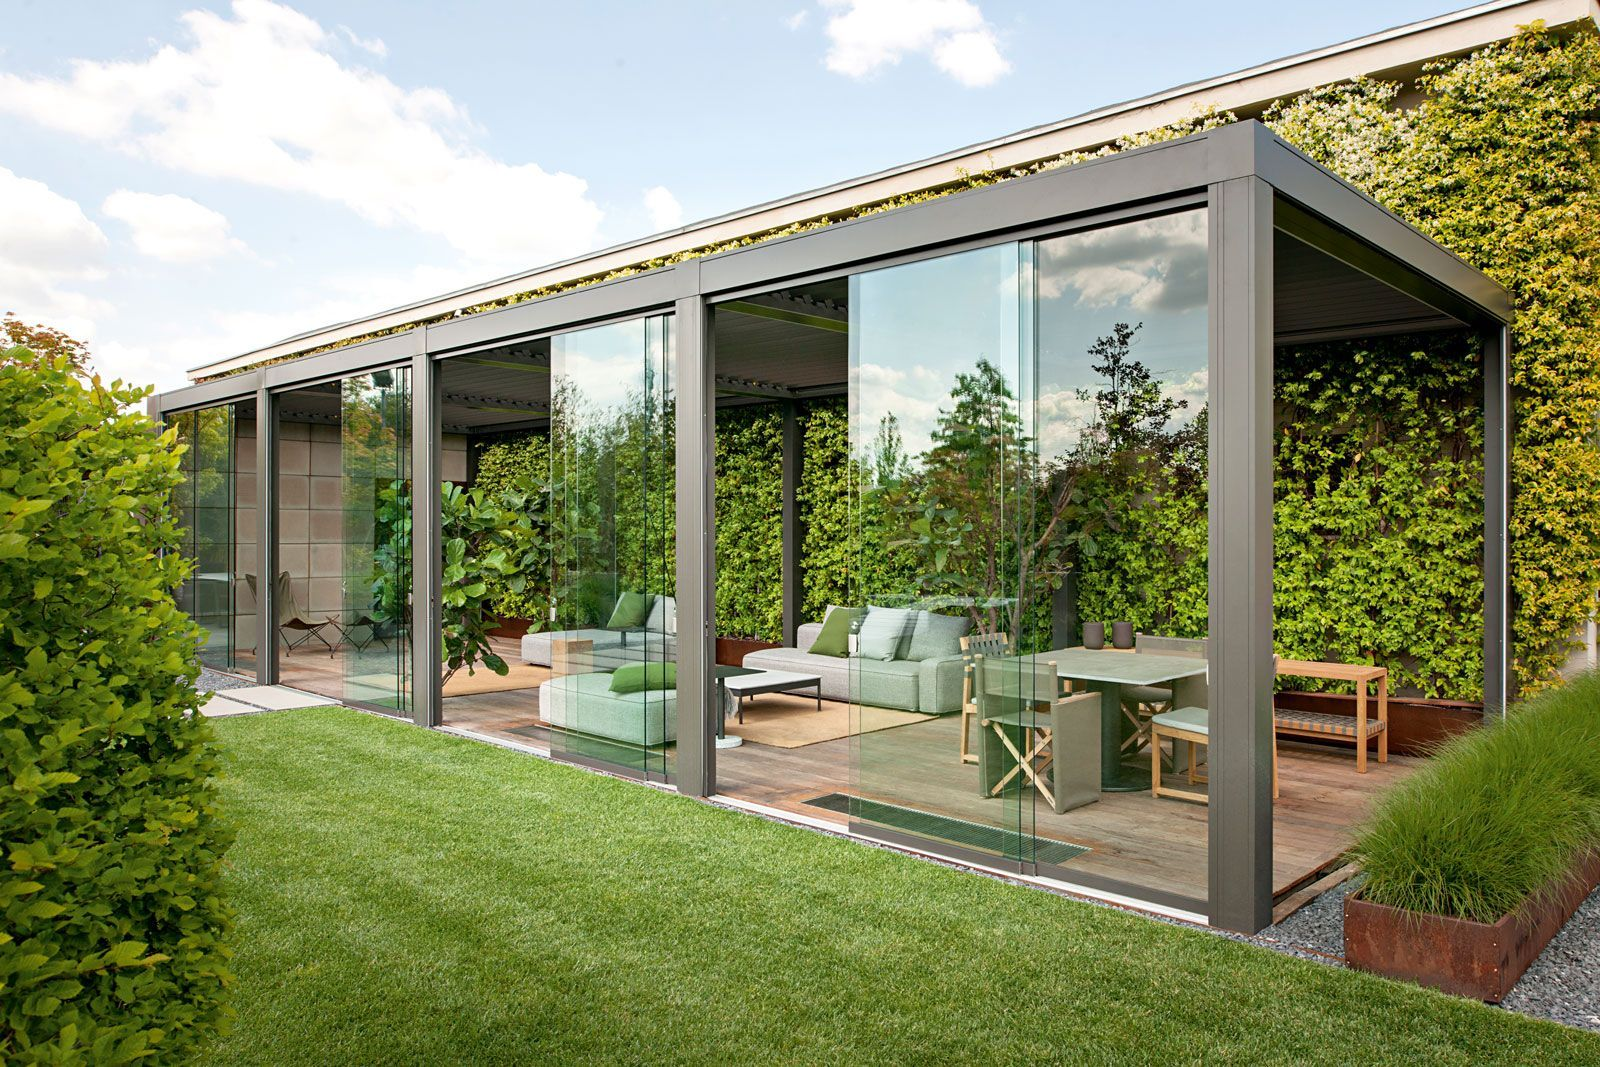 Sliding Glass Walls for Outdoor Spaces